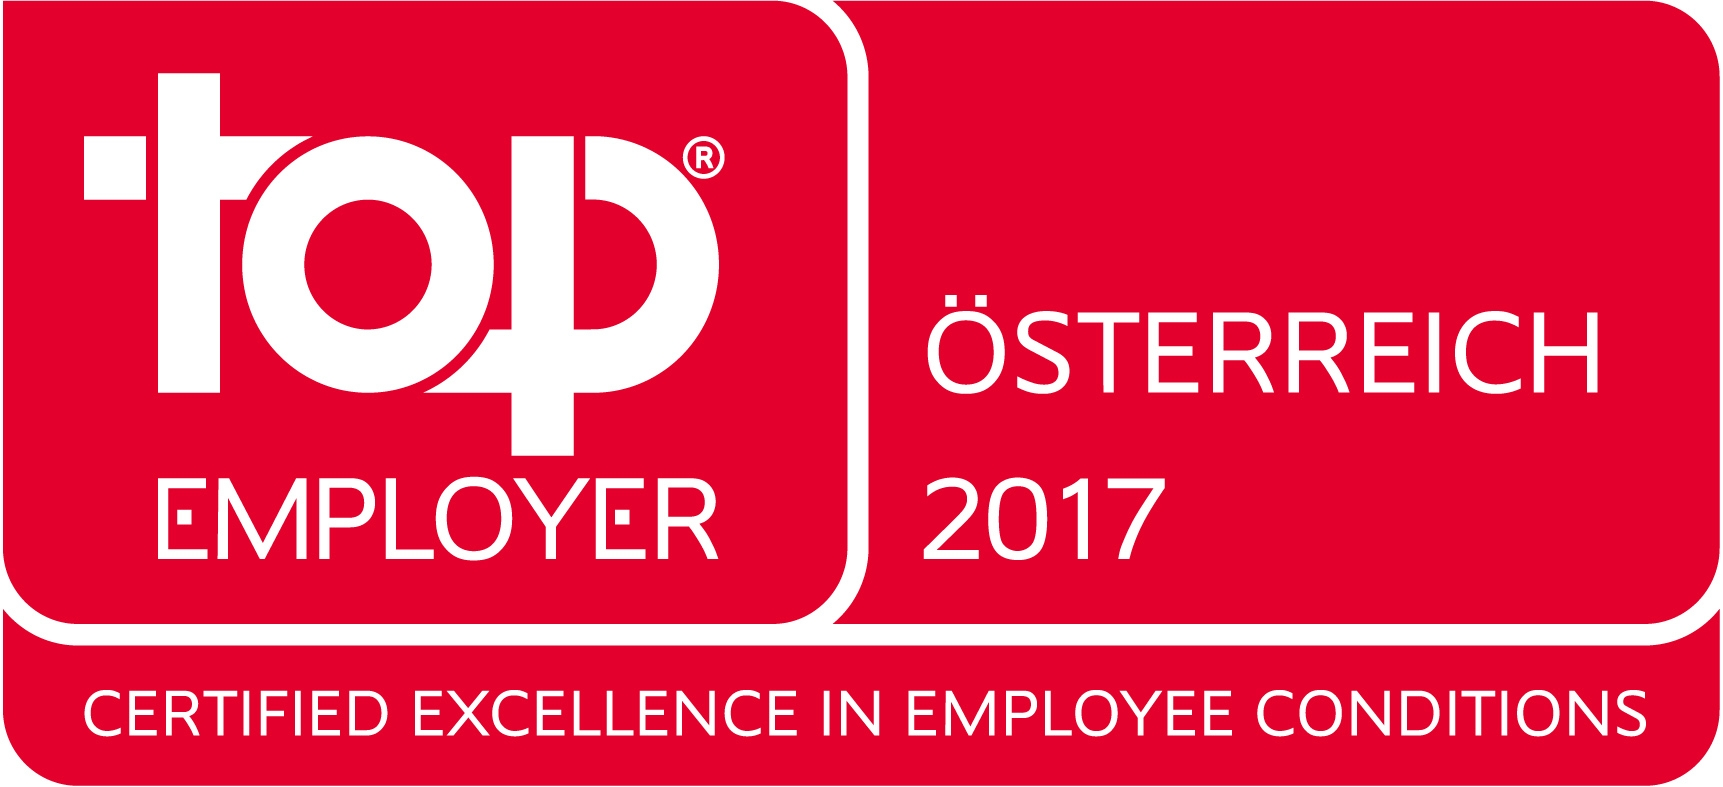 Top_Employers_Austria_2017.jpg